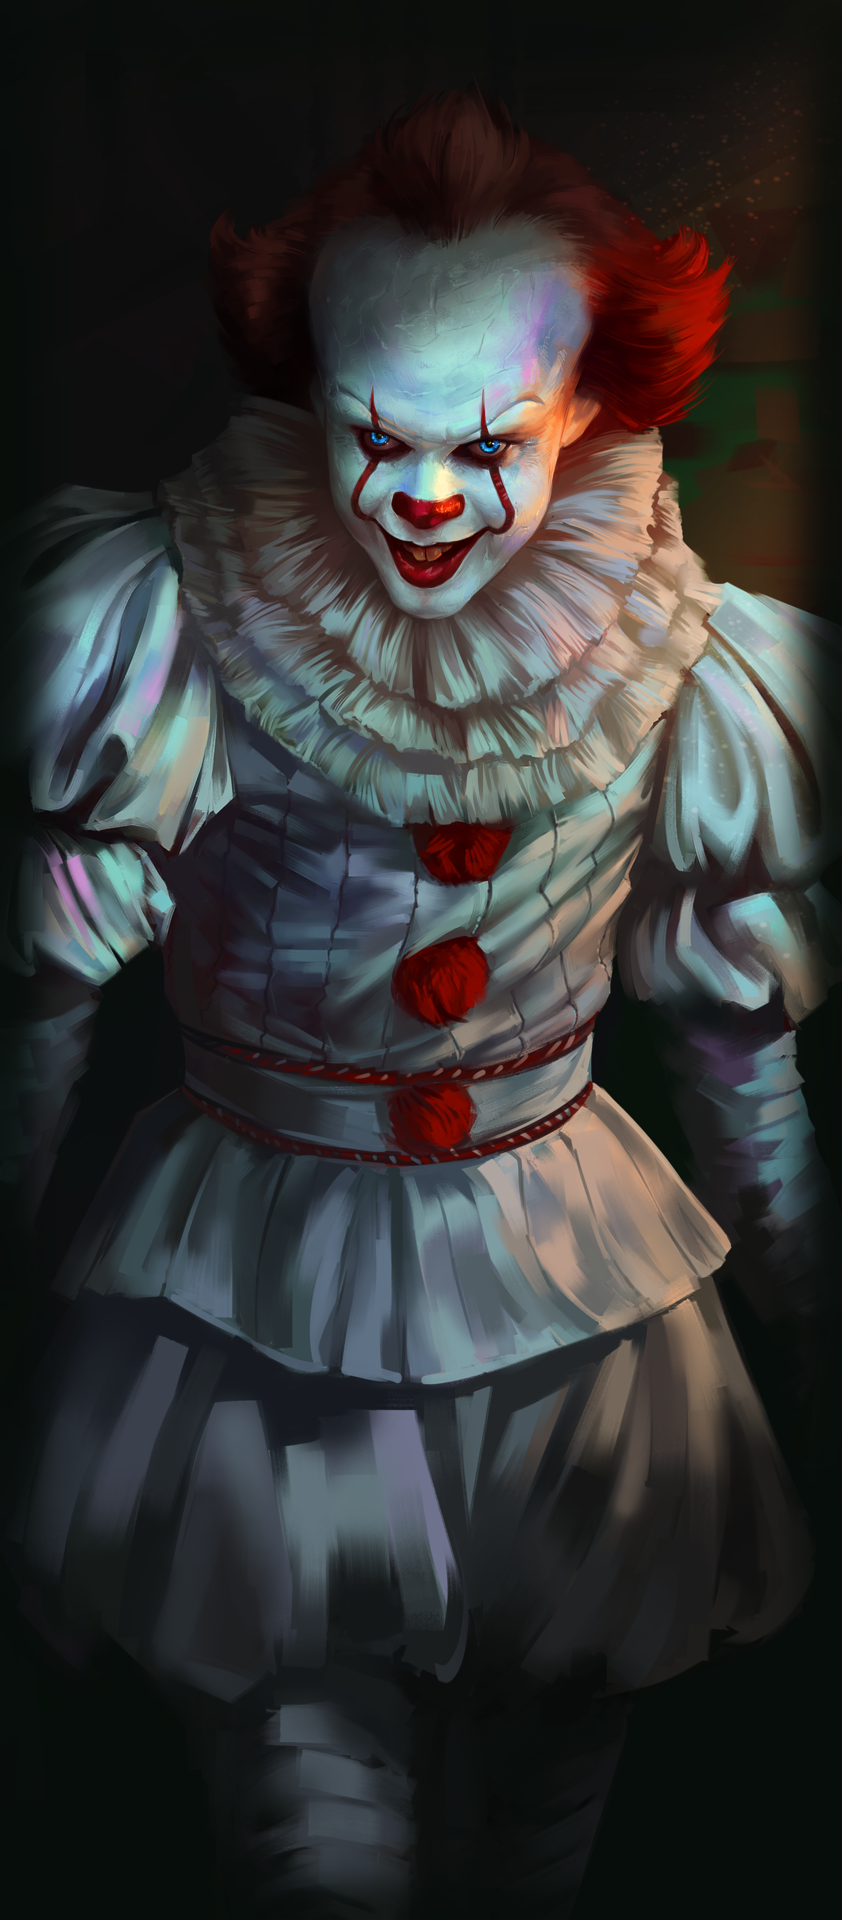 Pennywise By Andromedadualitas Clown Horror Pennywise The Dancing Clown Clown Photos